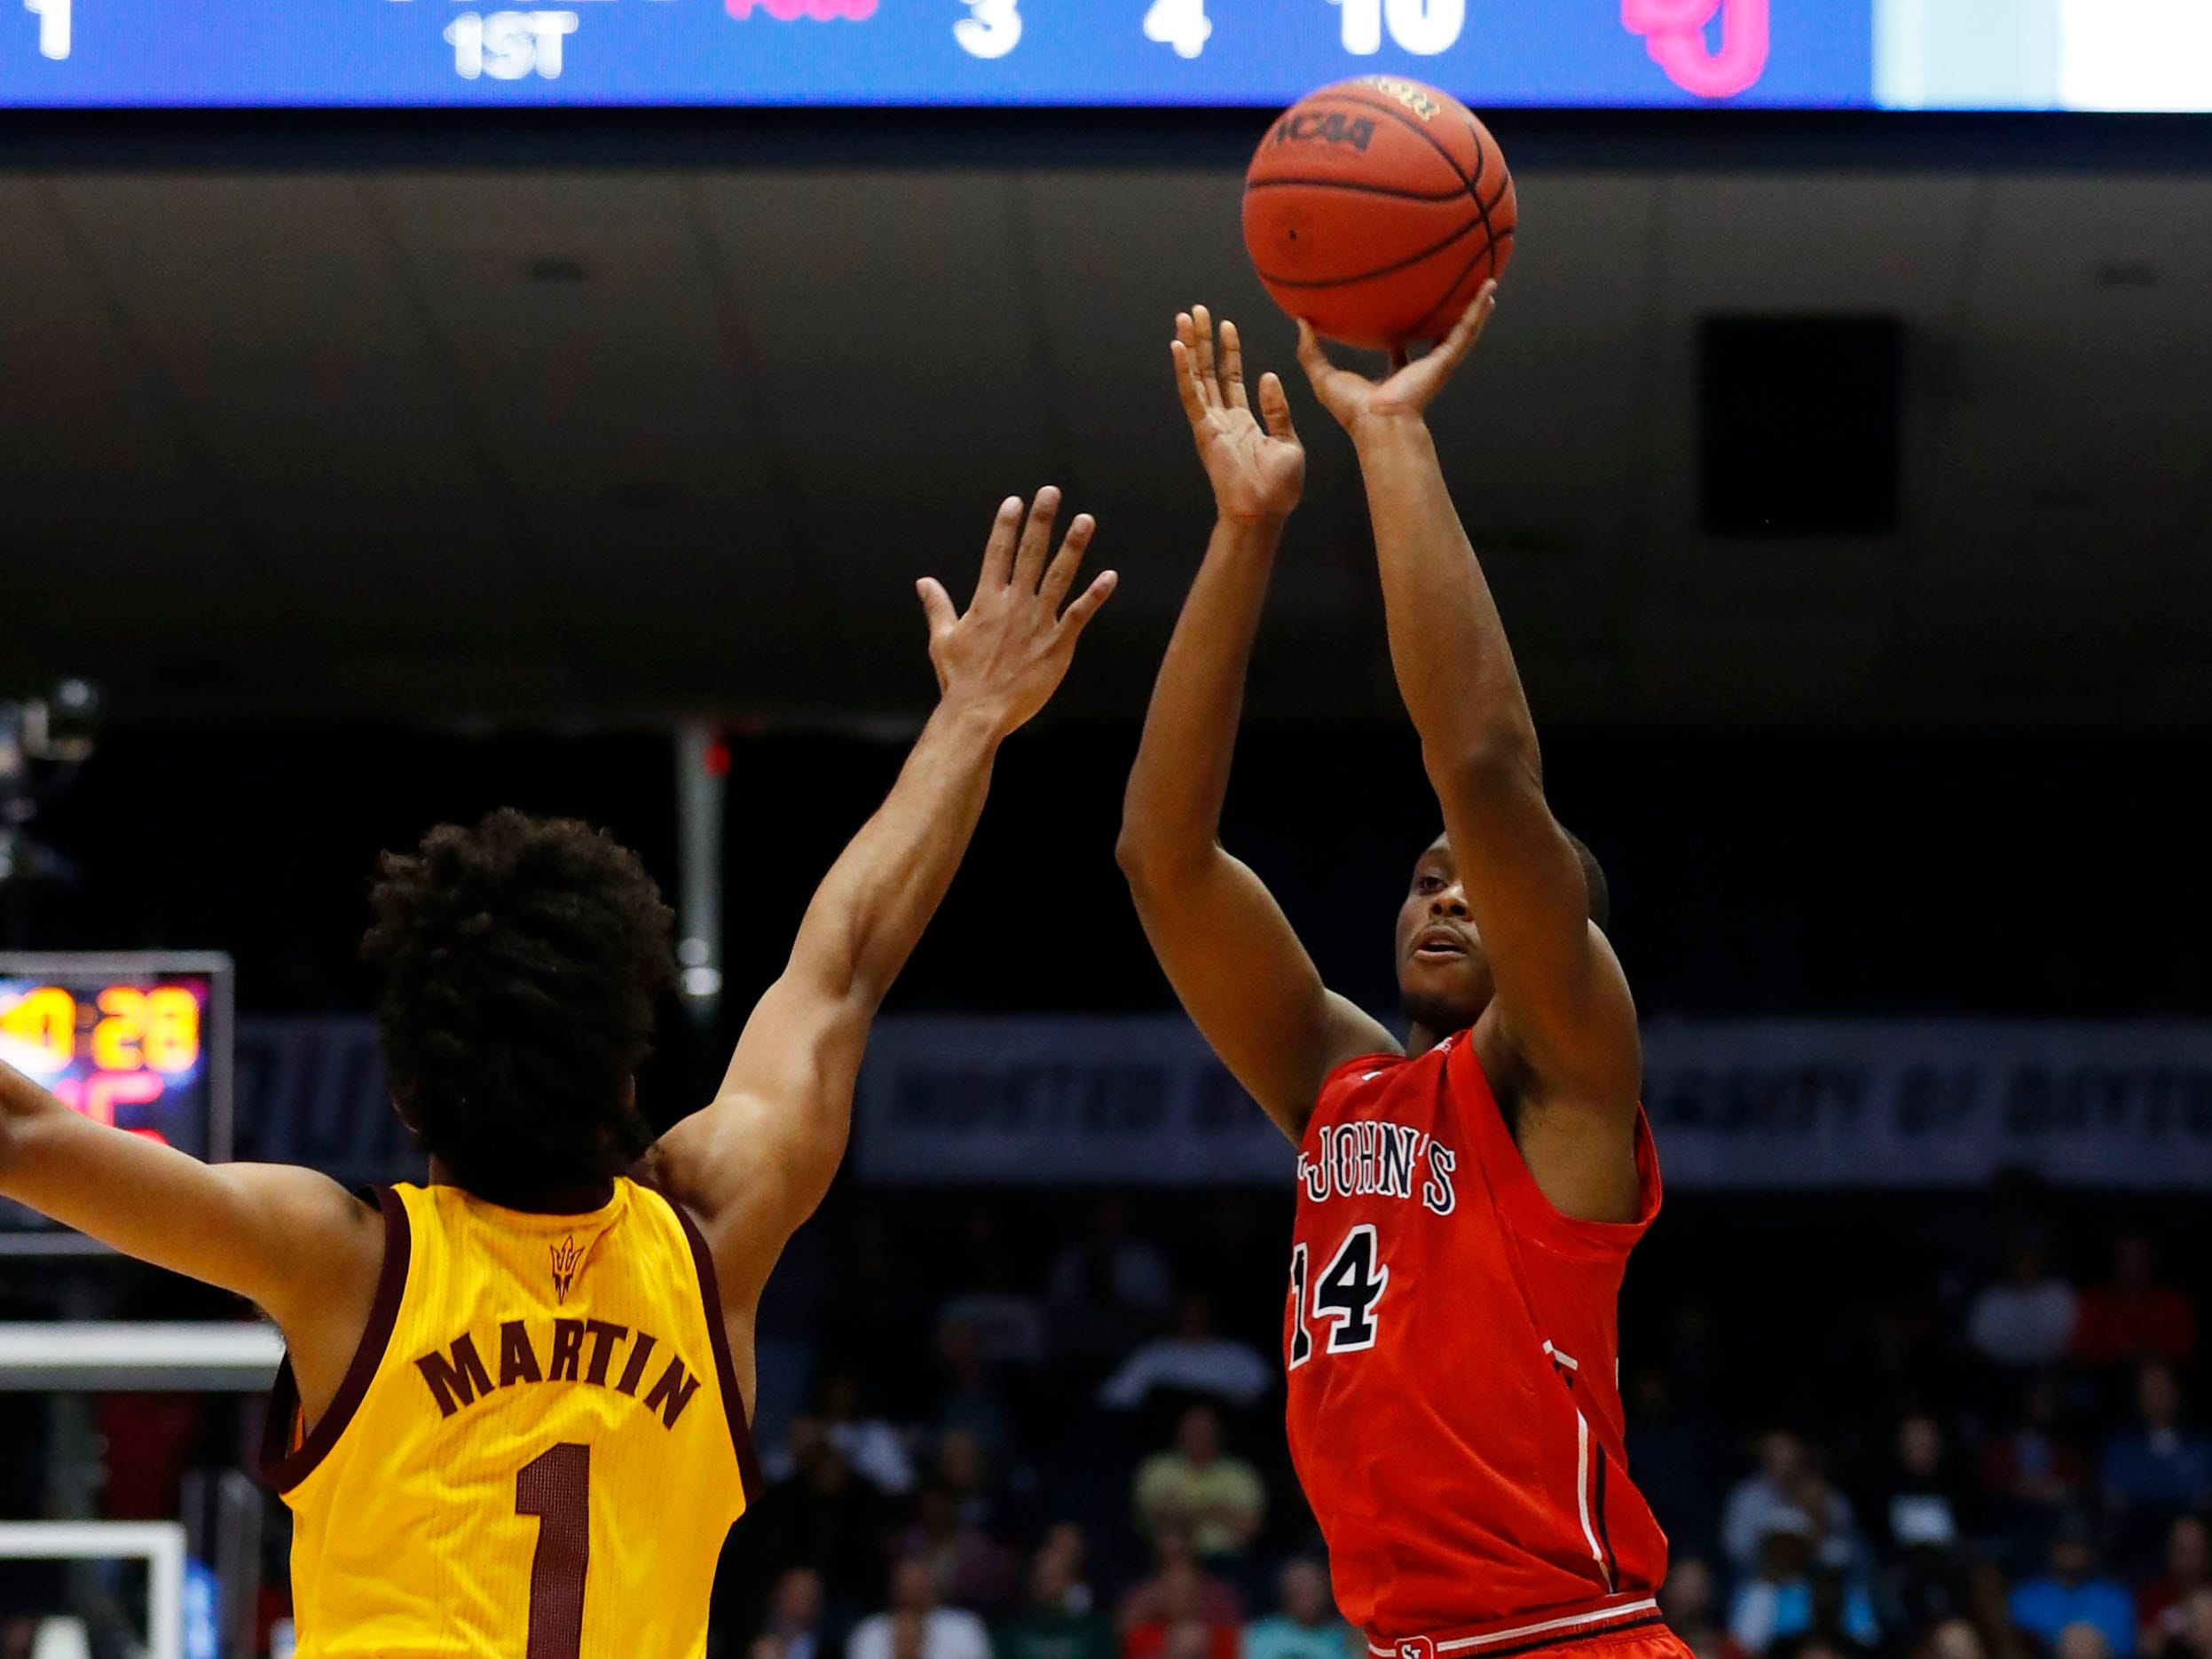 Mar 20, 2019; Dayton, OH, USA; St. John's Red Storm guard Mustapha Heron (14) shoots the ball over Arizona State Sun Devils guard Remy Martin (1) in the first half in the First Four of the 2019 NCAA Tournament at Dayton Arena. Mandatory Credit: Rick Osentoski-USA TODAY Sports